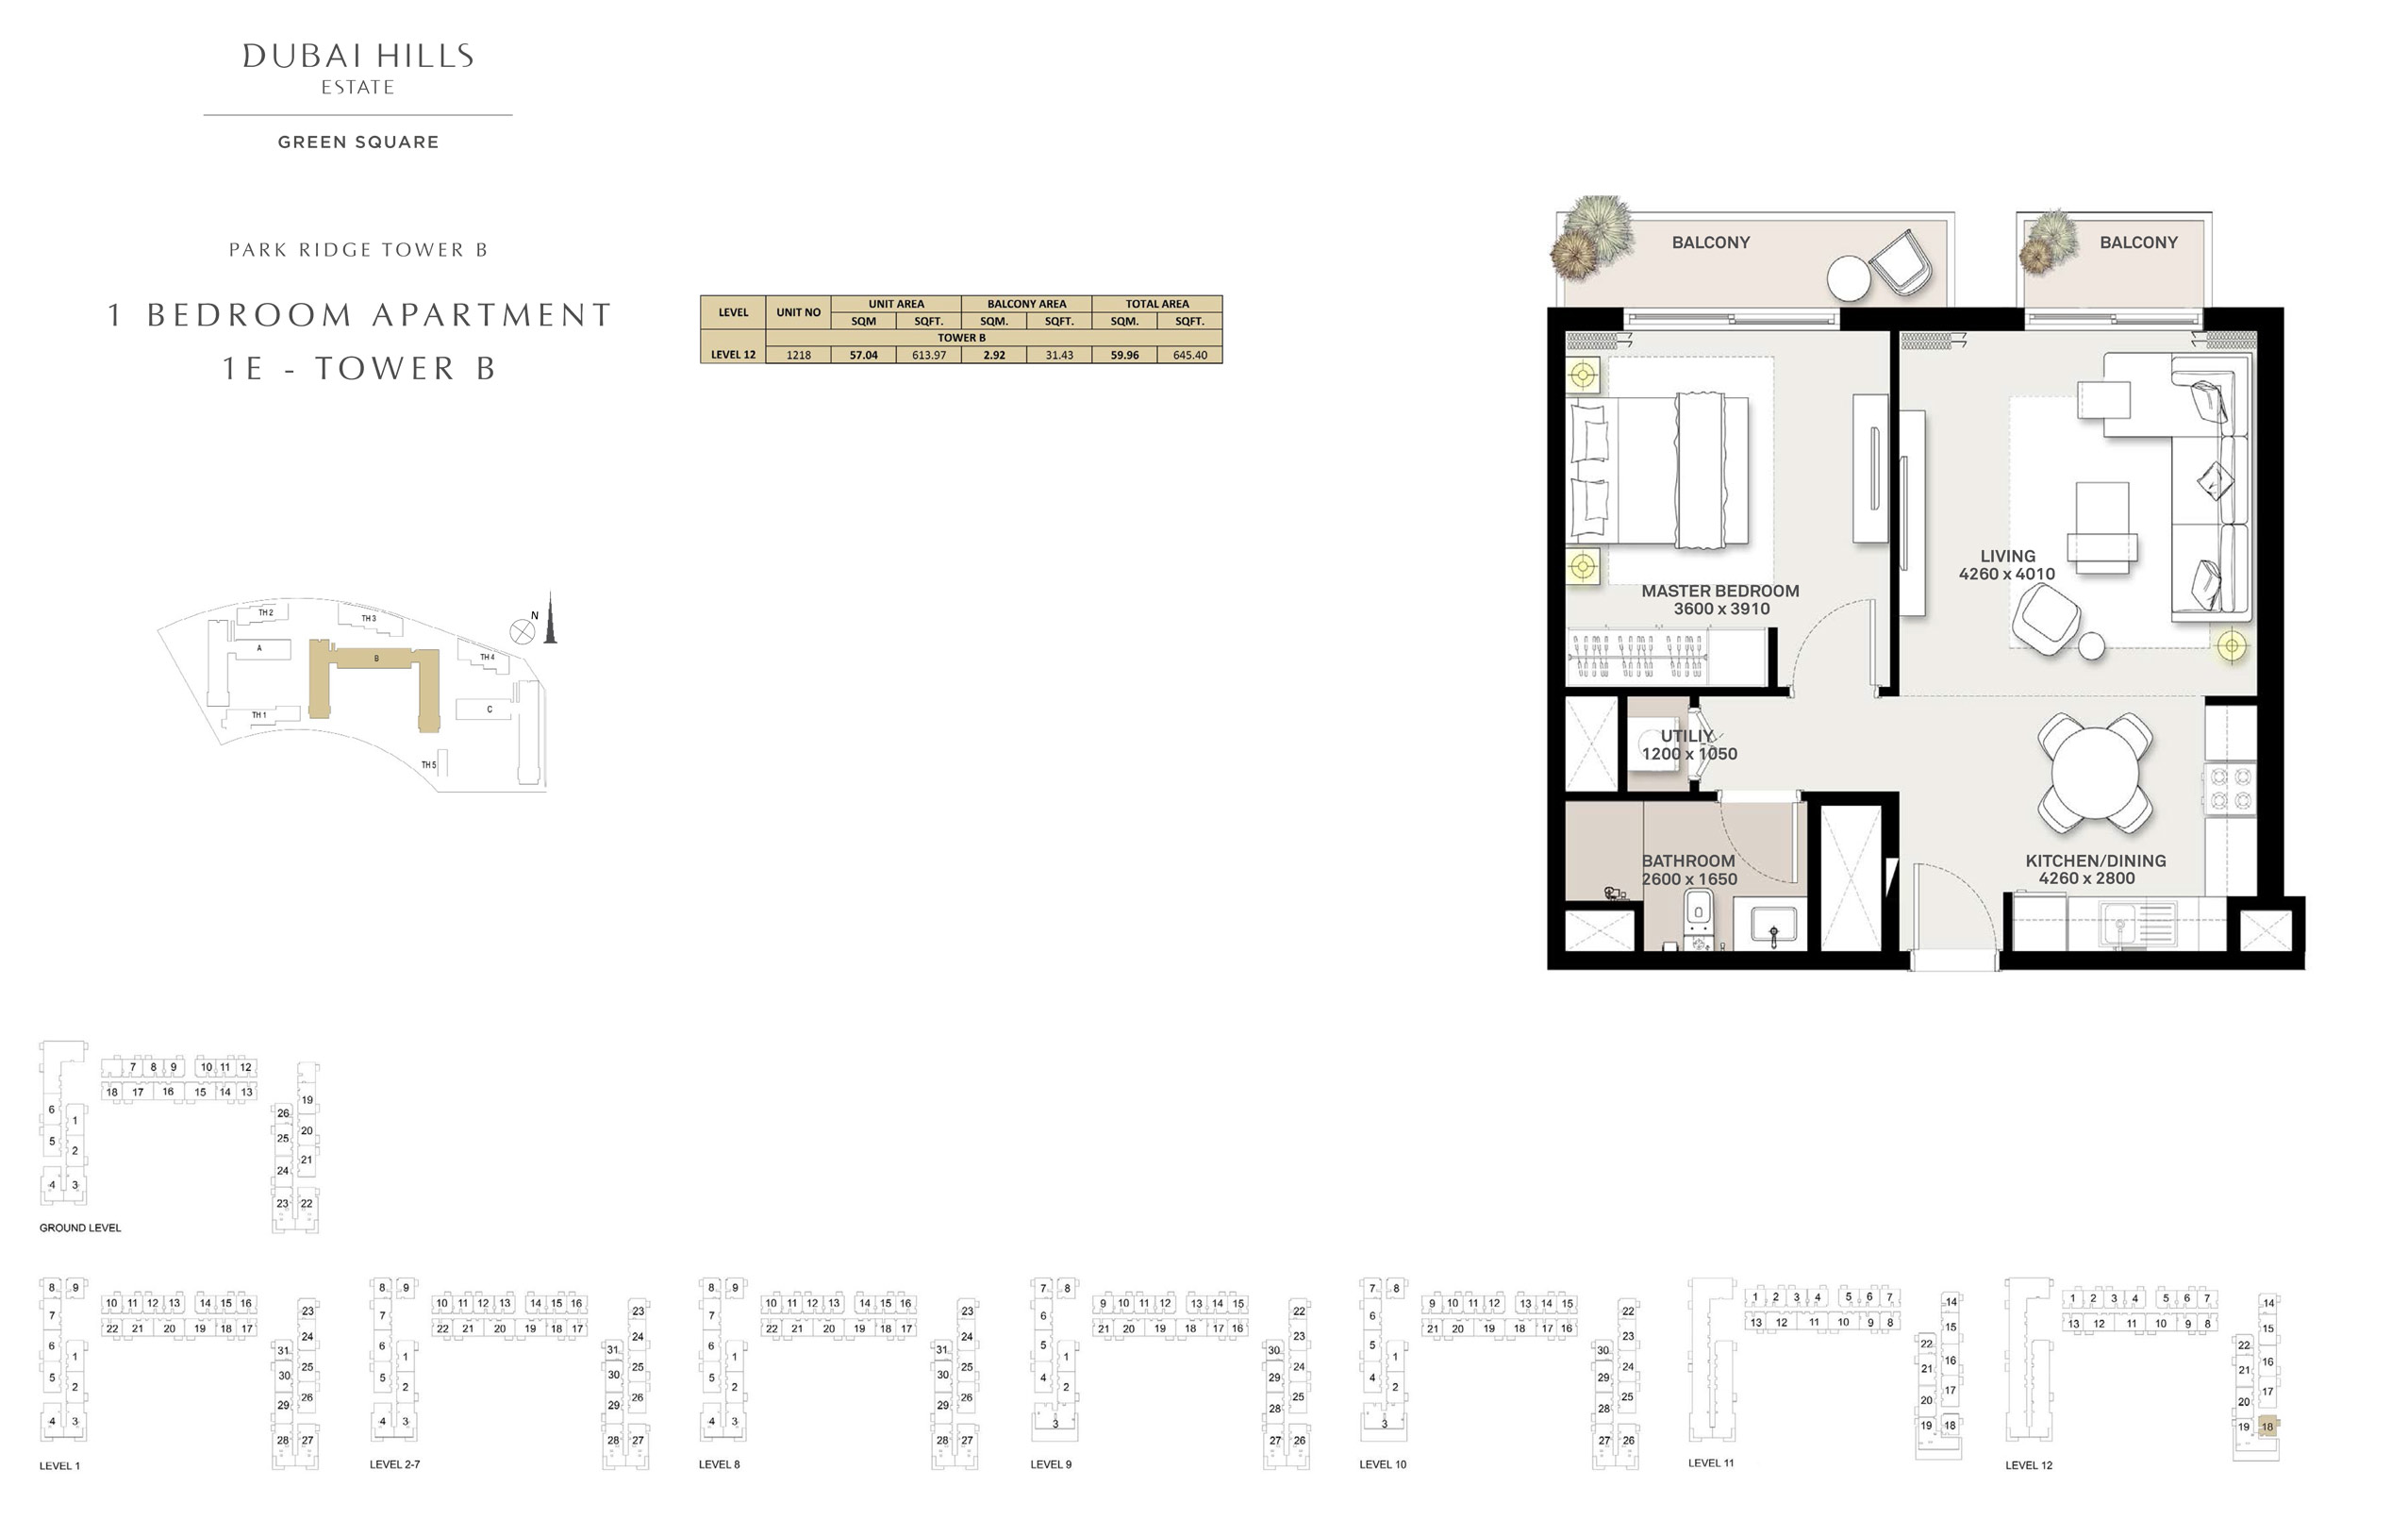 1 Bedroom Apartment 1 E - Tower B, Size 645 sq ft